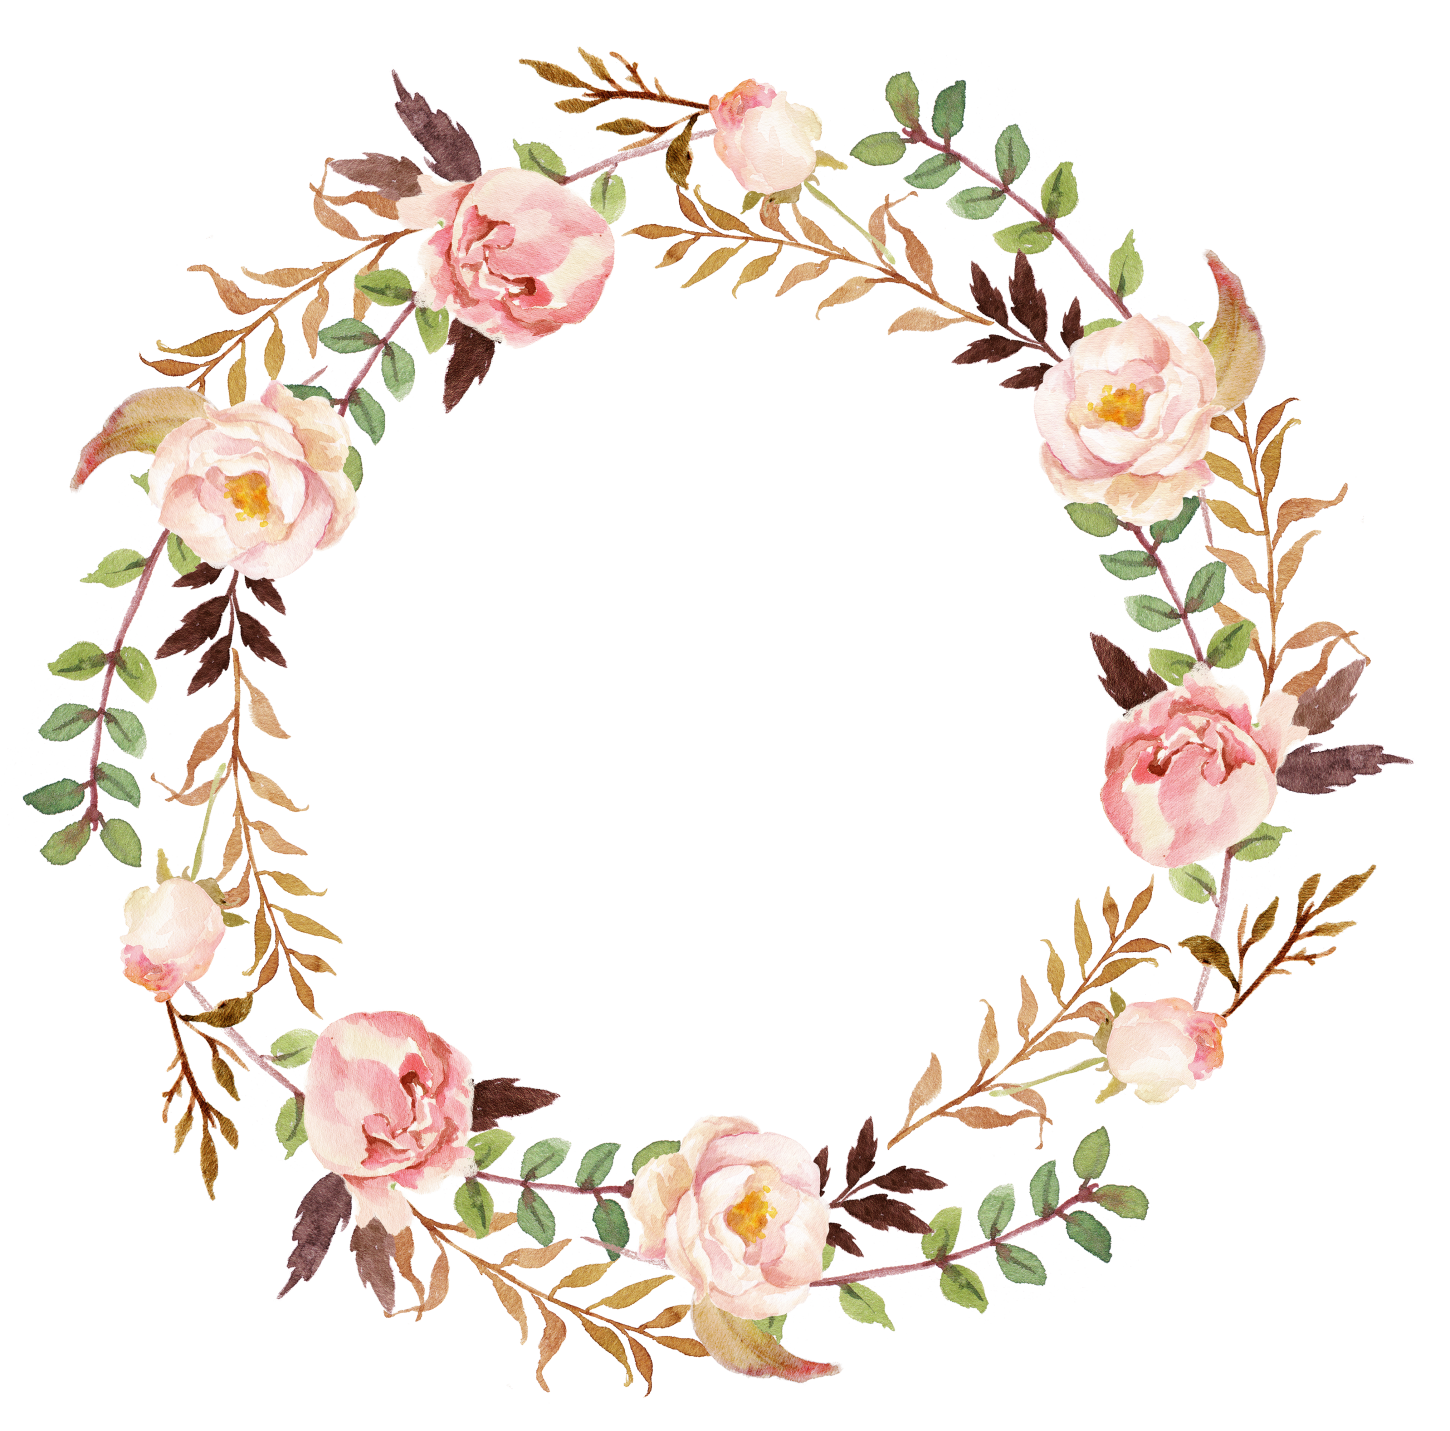 Spring Flower Wreath Clip Art Together With Free Vintage  : Flower20wreath61450 from vacances-mediterranee.info size 1450 x 1431 png 1569kB